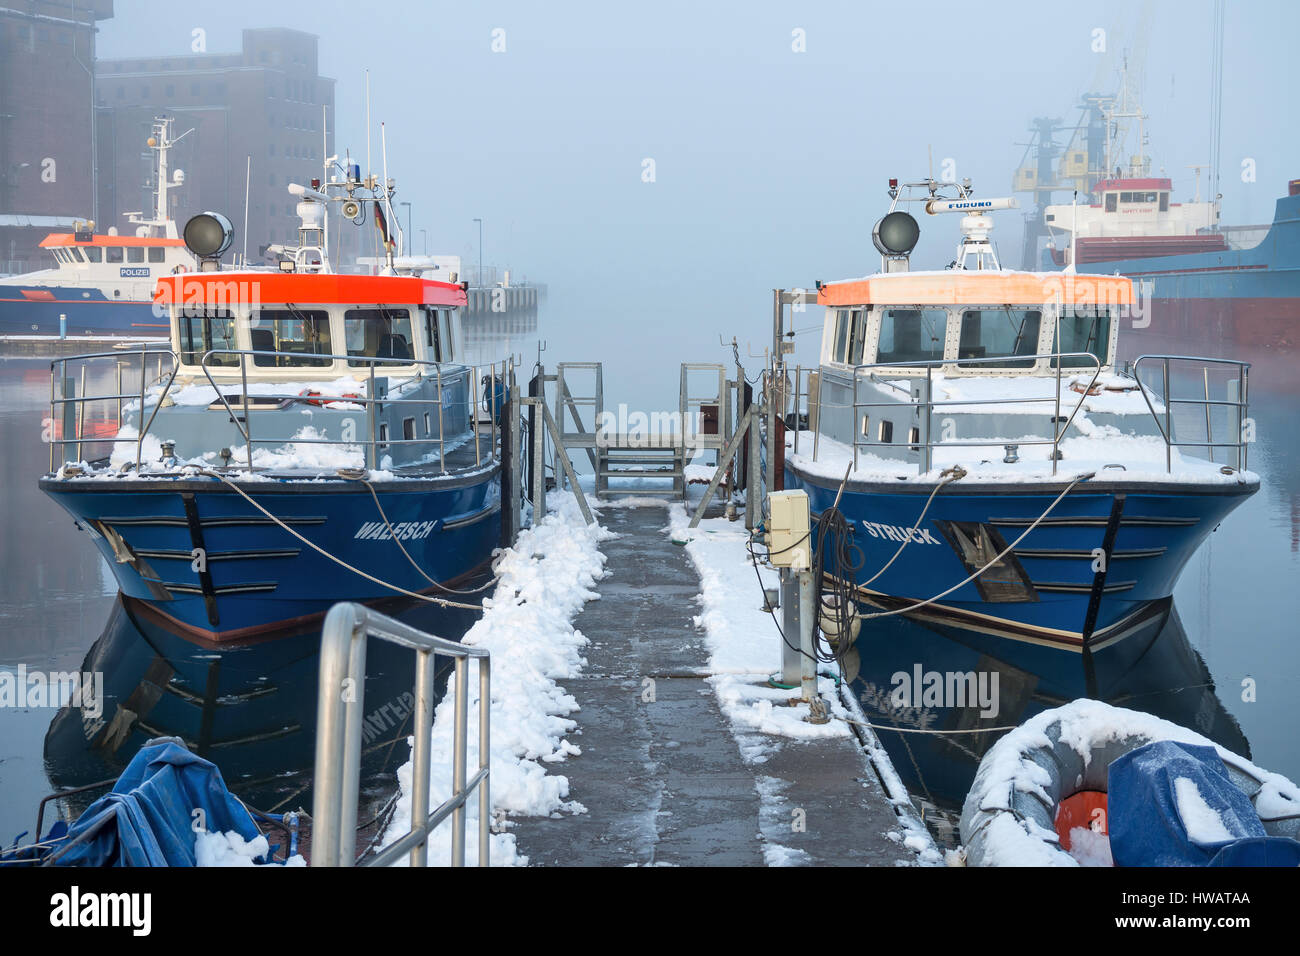 police patrol boats in the port of Wismar - Stock Image